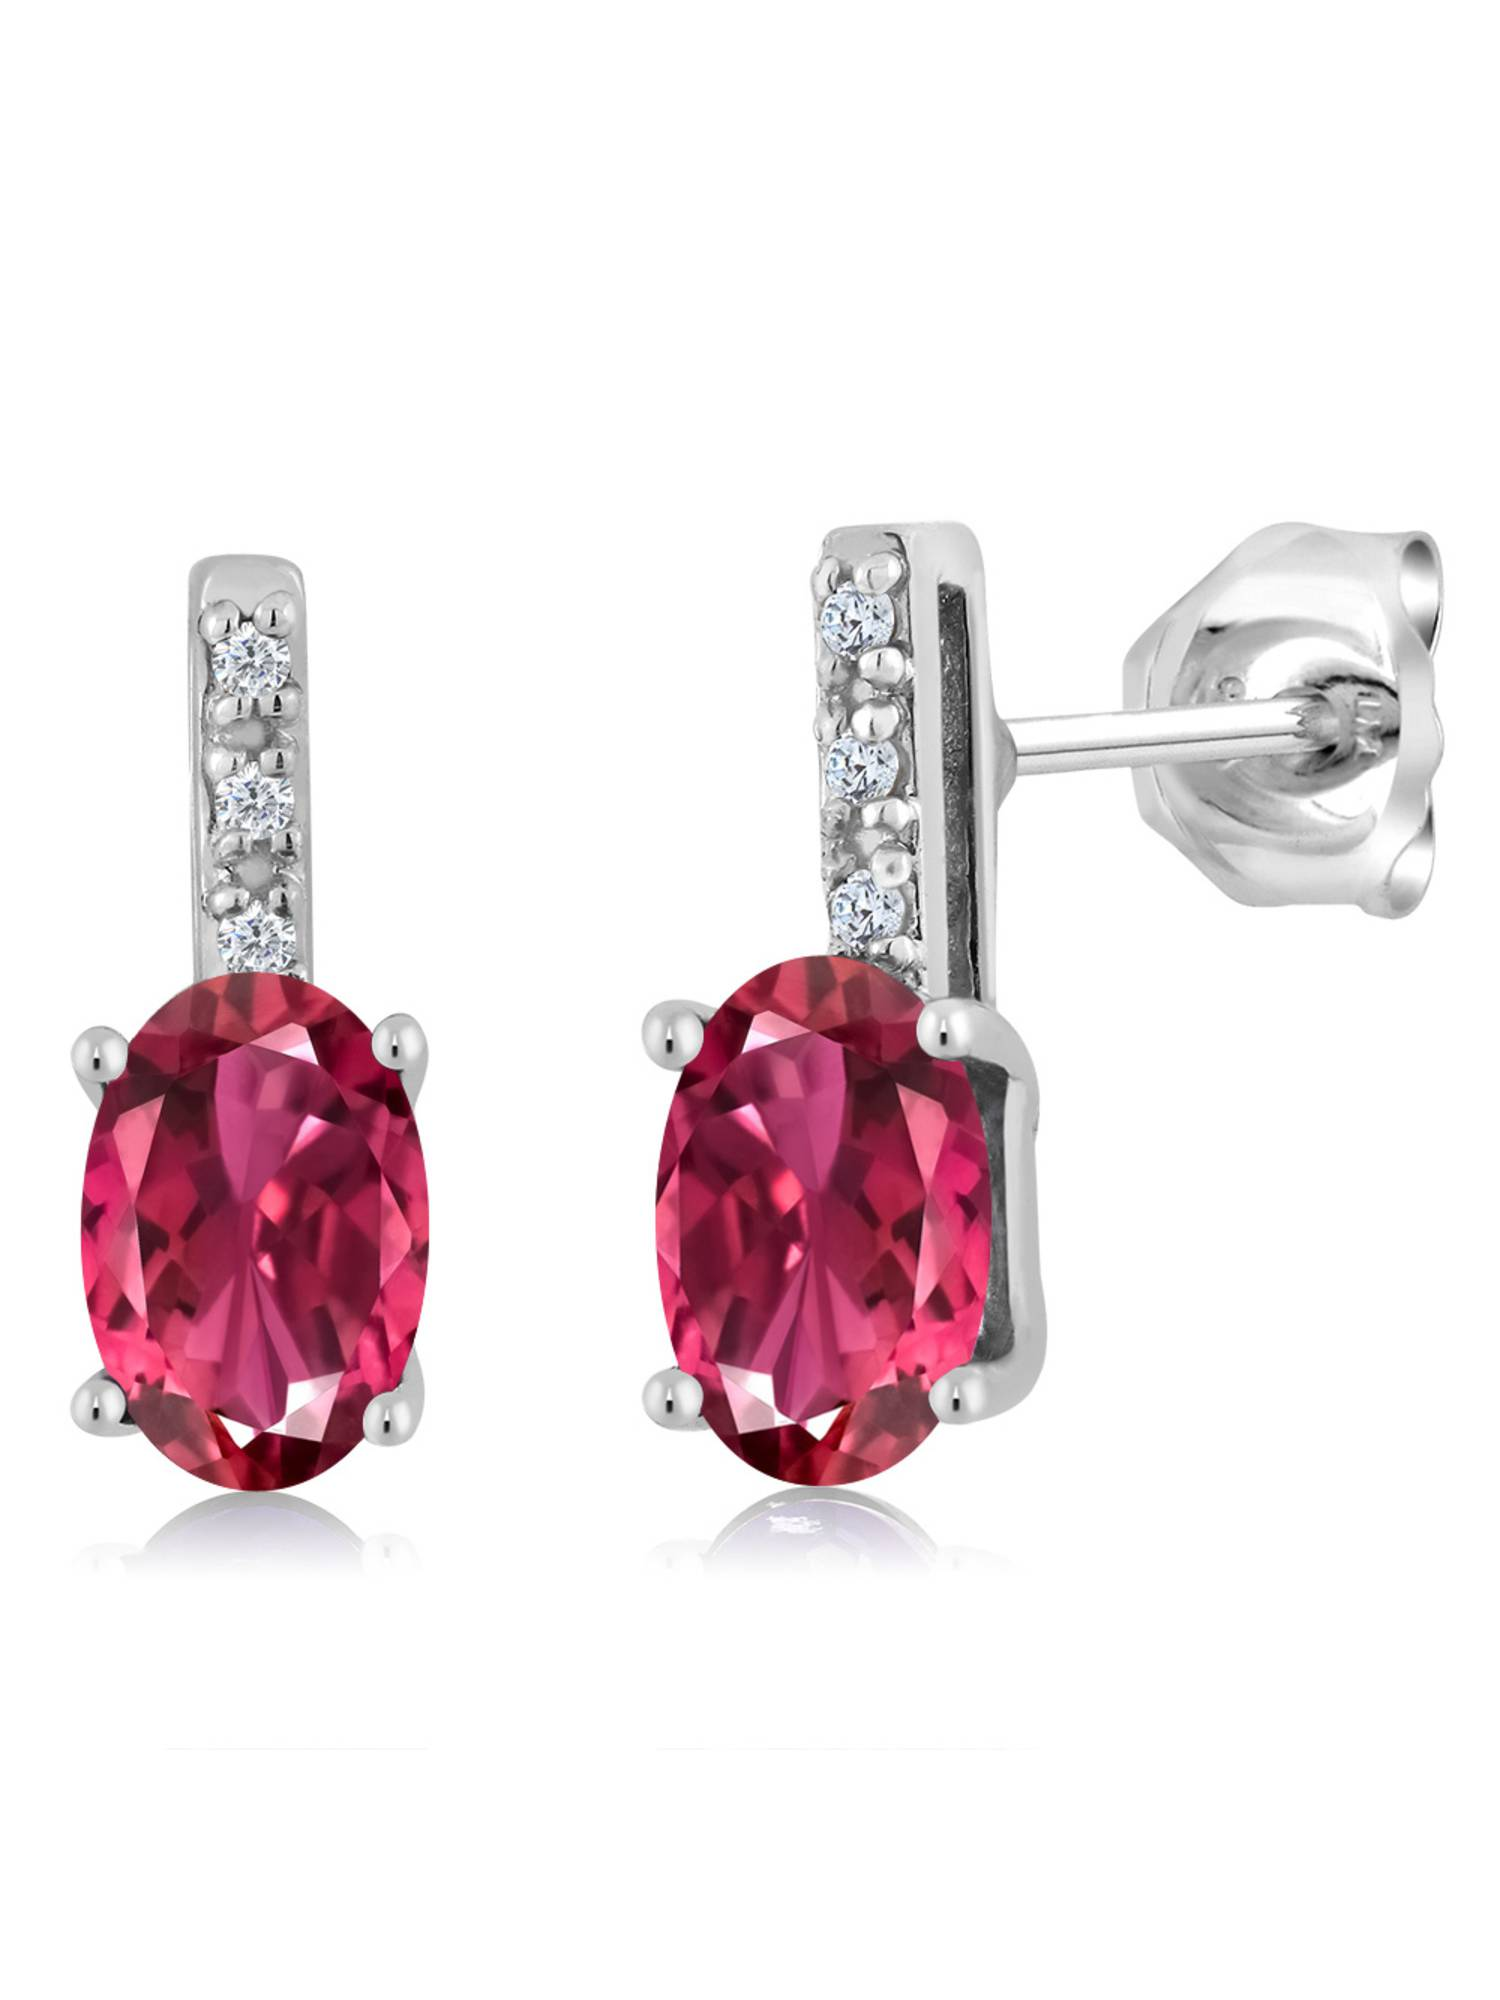 0.76 Ct Oval 6x4mm Pink Tourmaline AAA 10K White Gold Stud Diamond Earrings by